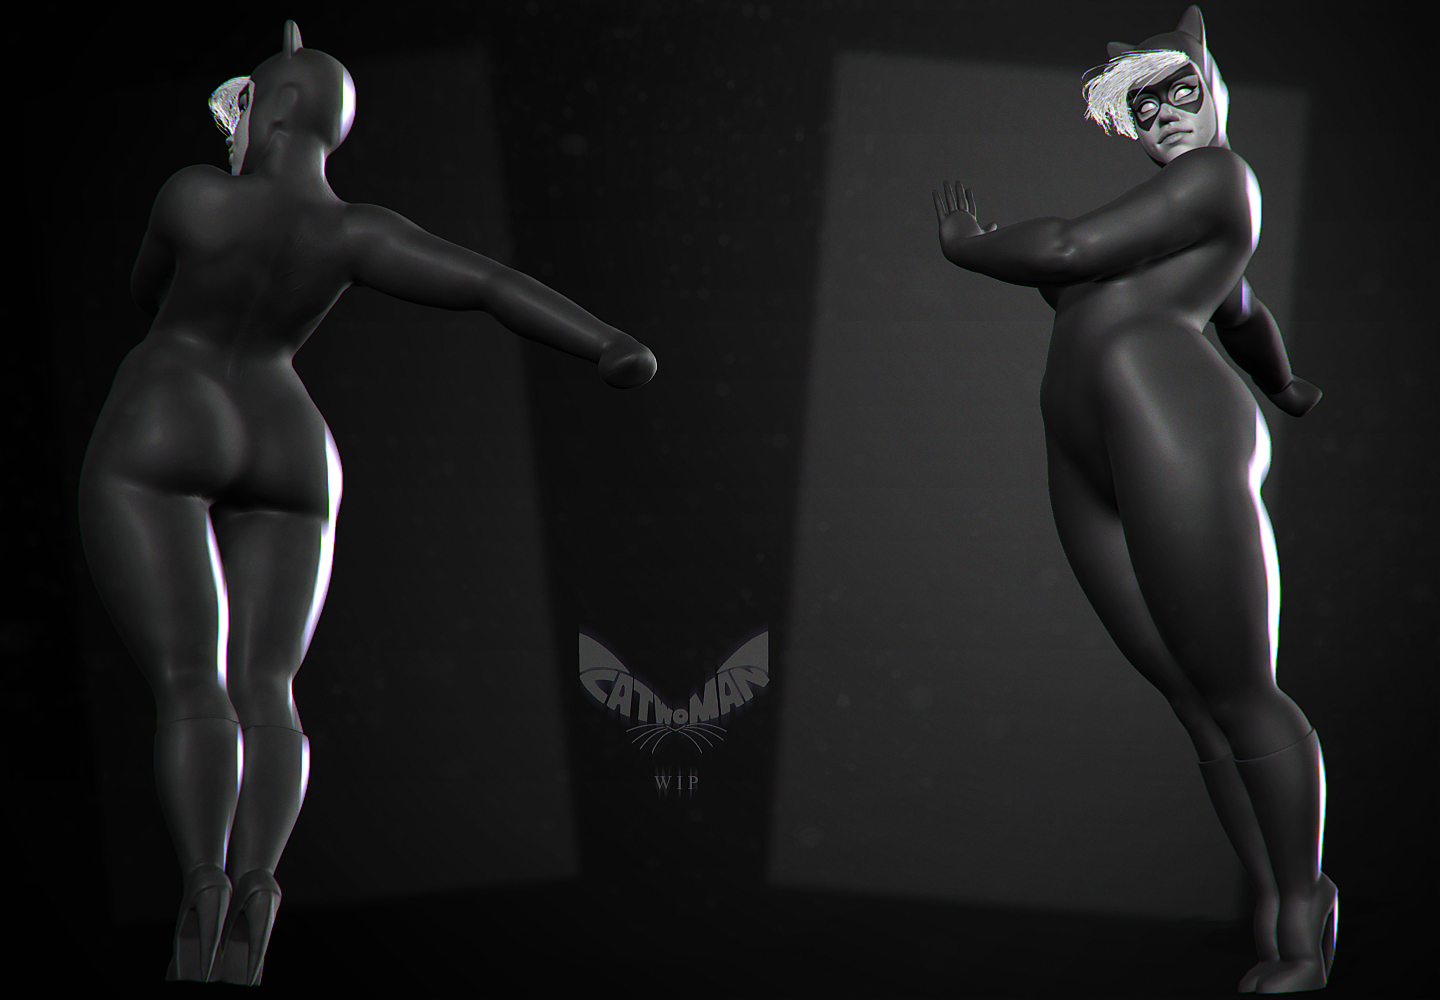 Catwoman_wip by DuncanFraser